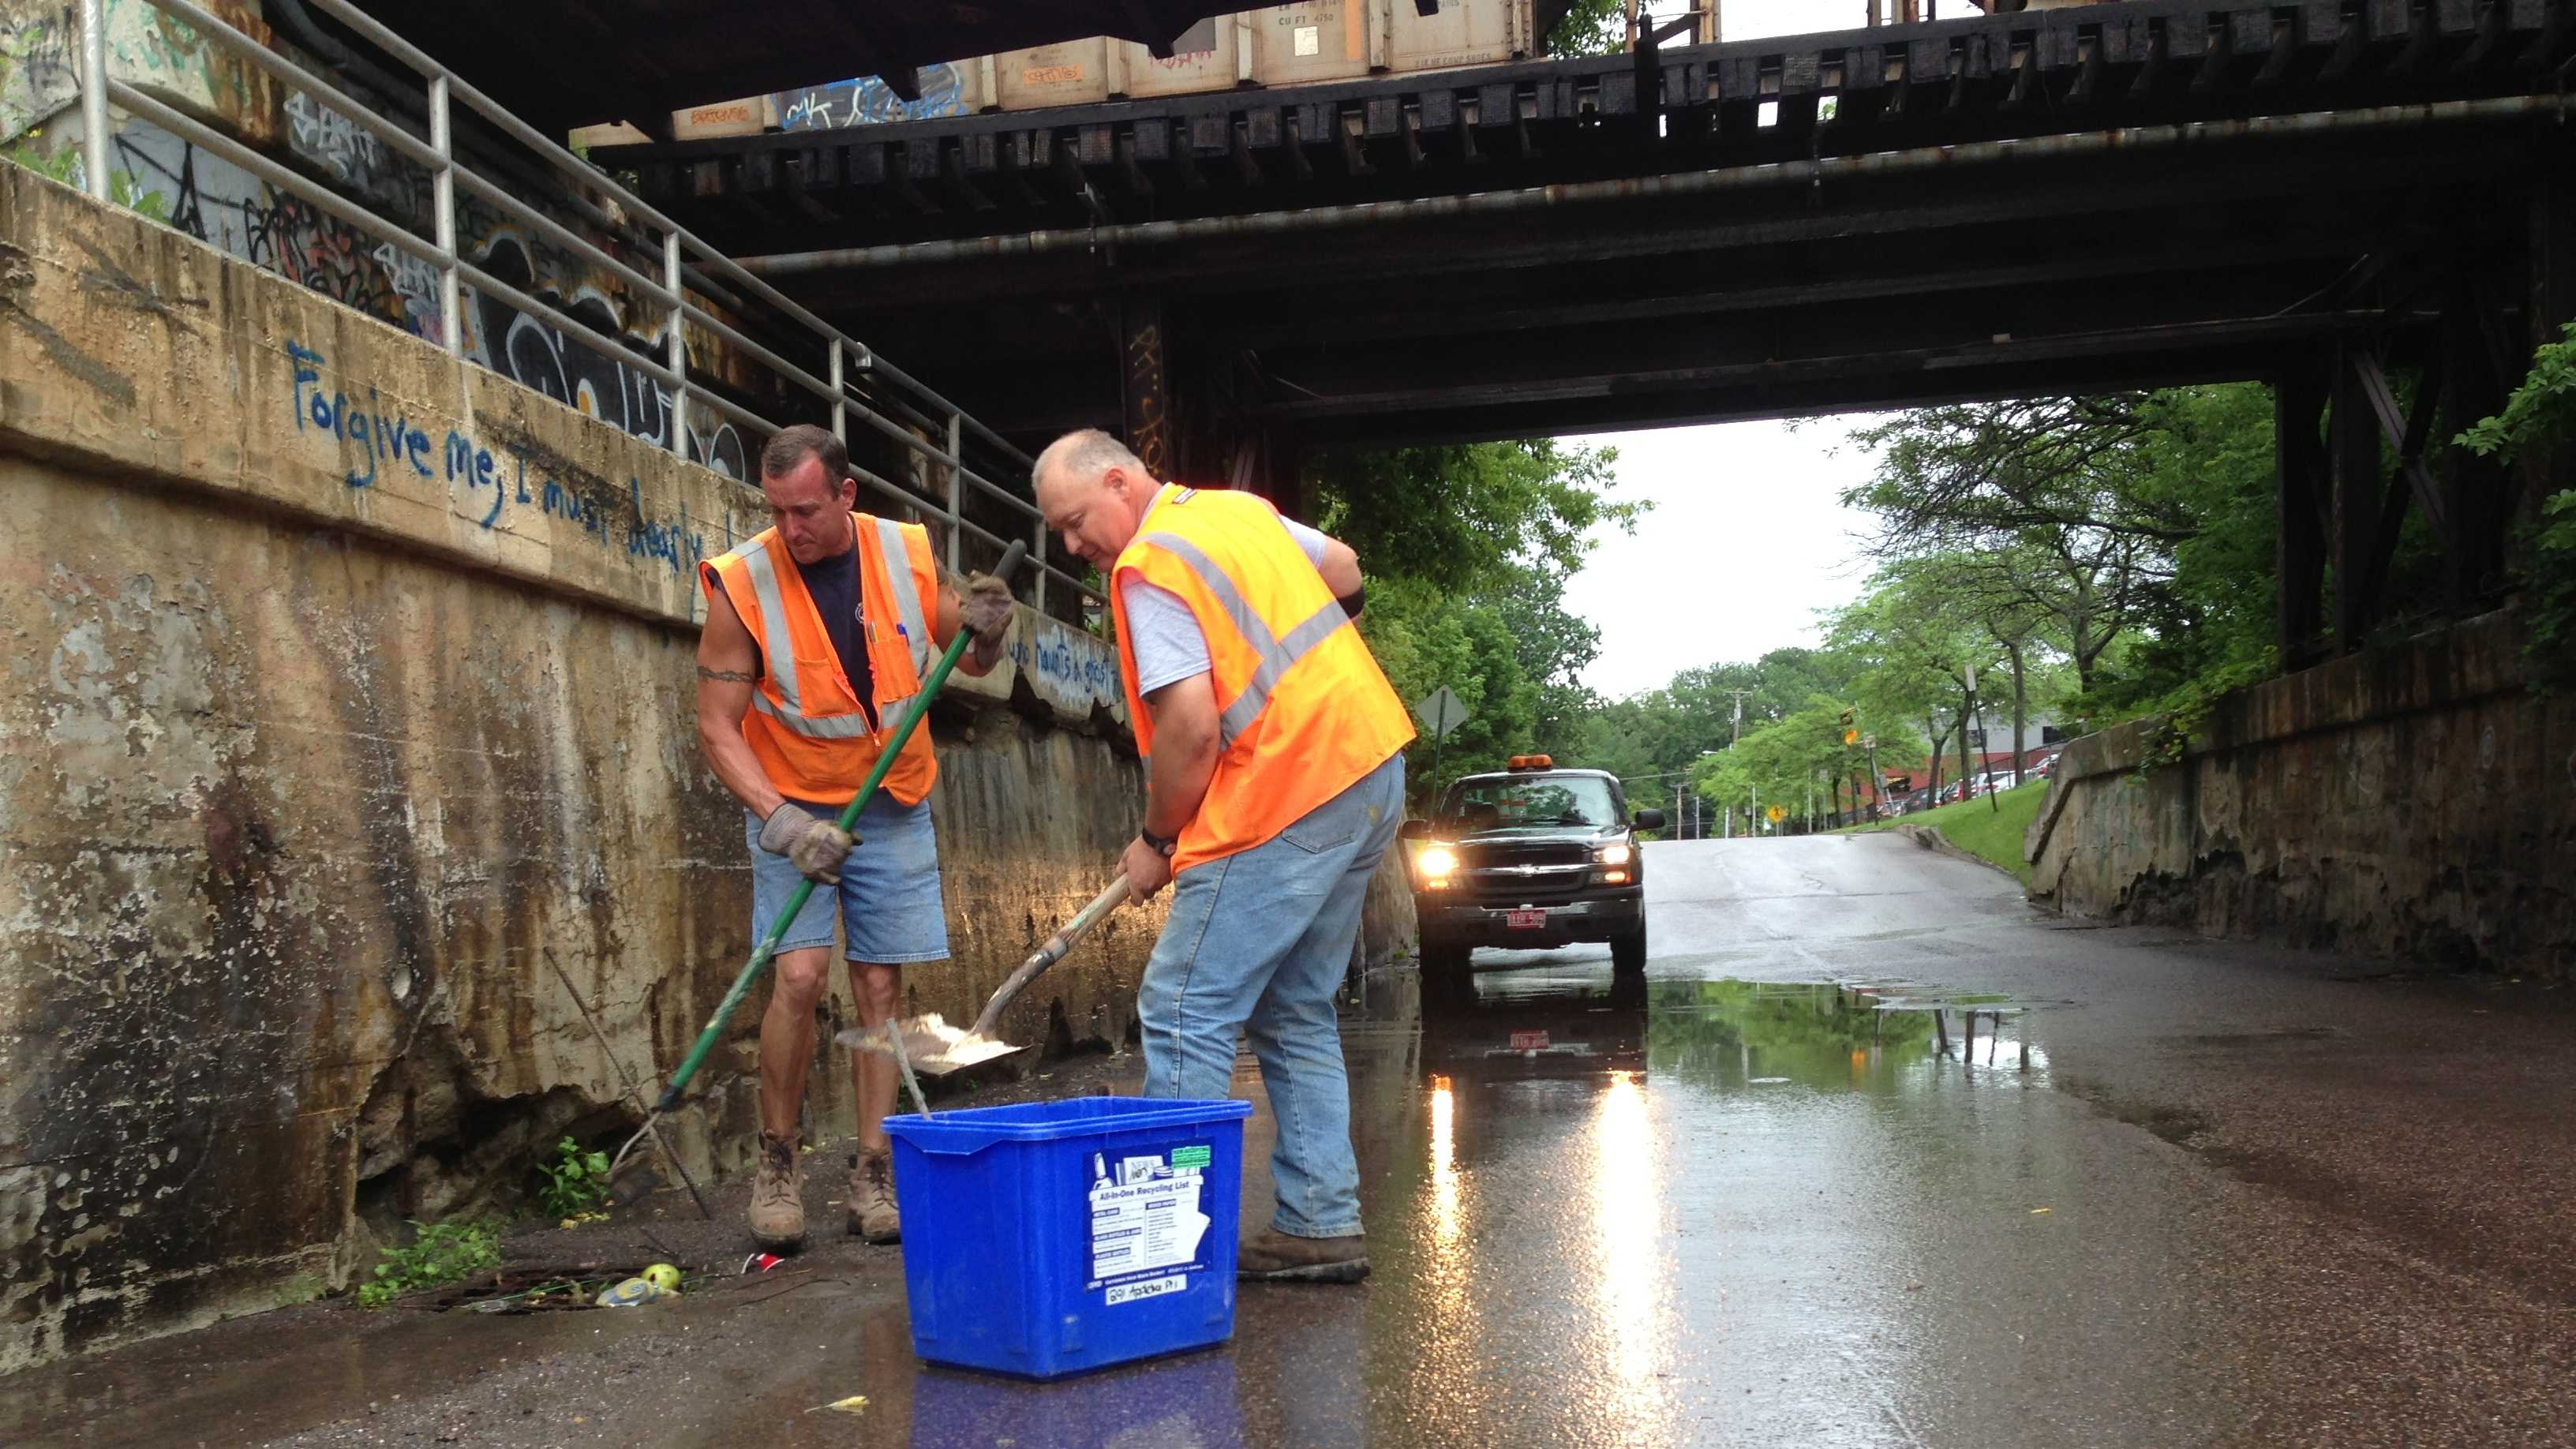 06-28-13 Vt. avoids flooding overnight, but threat persists - img